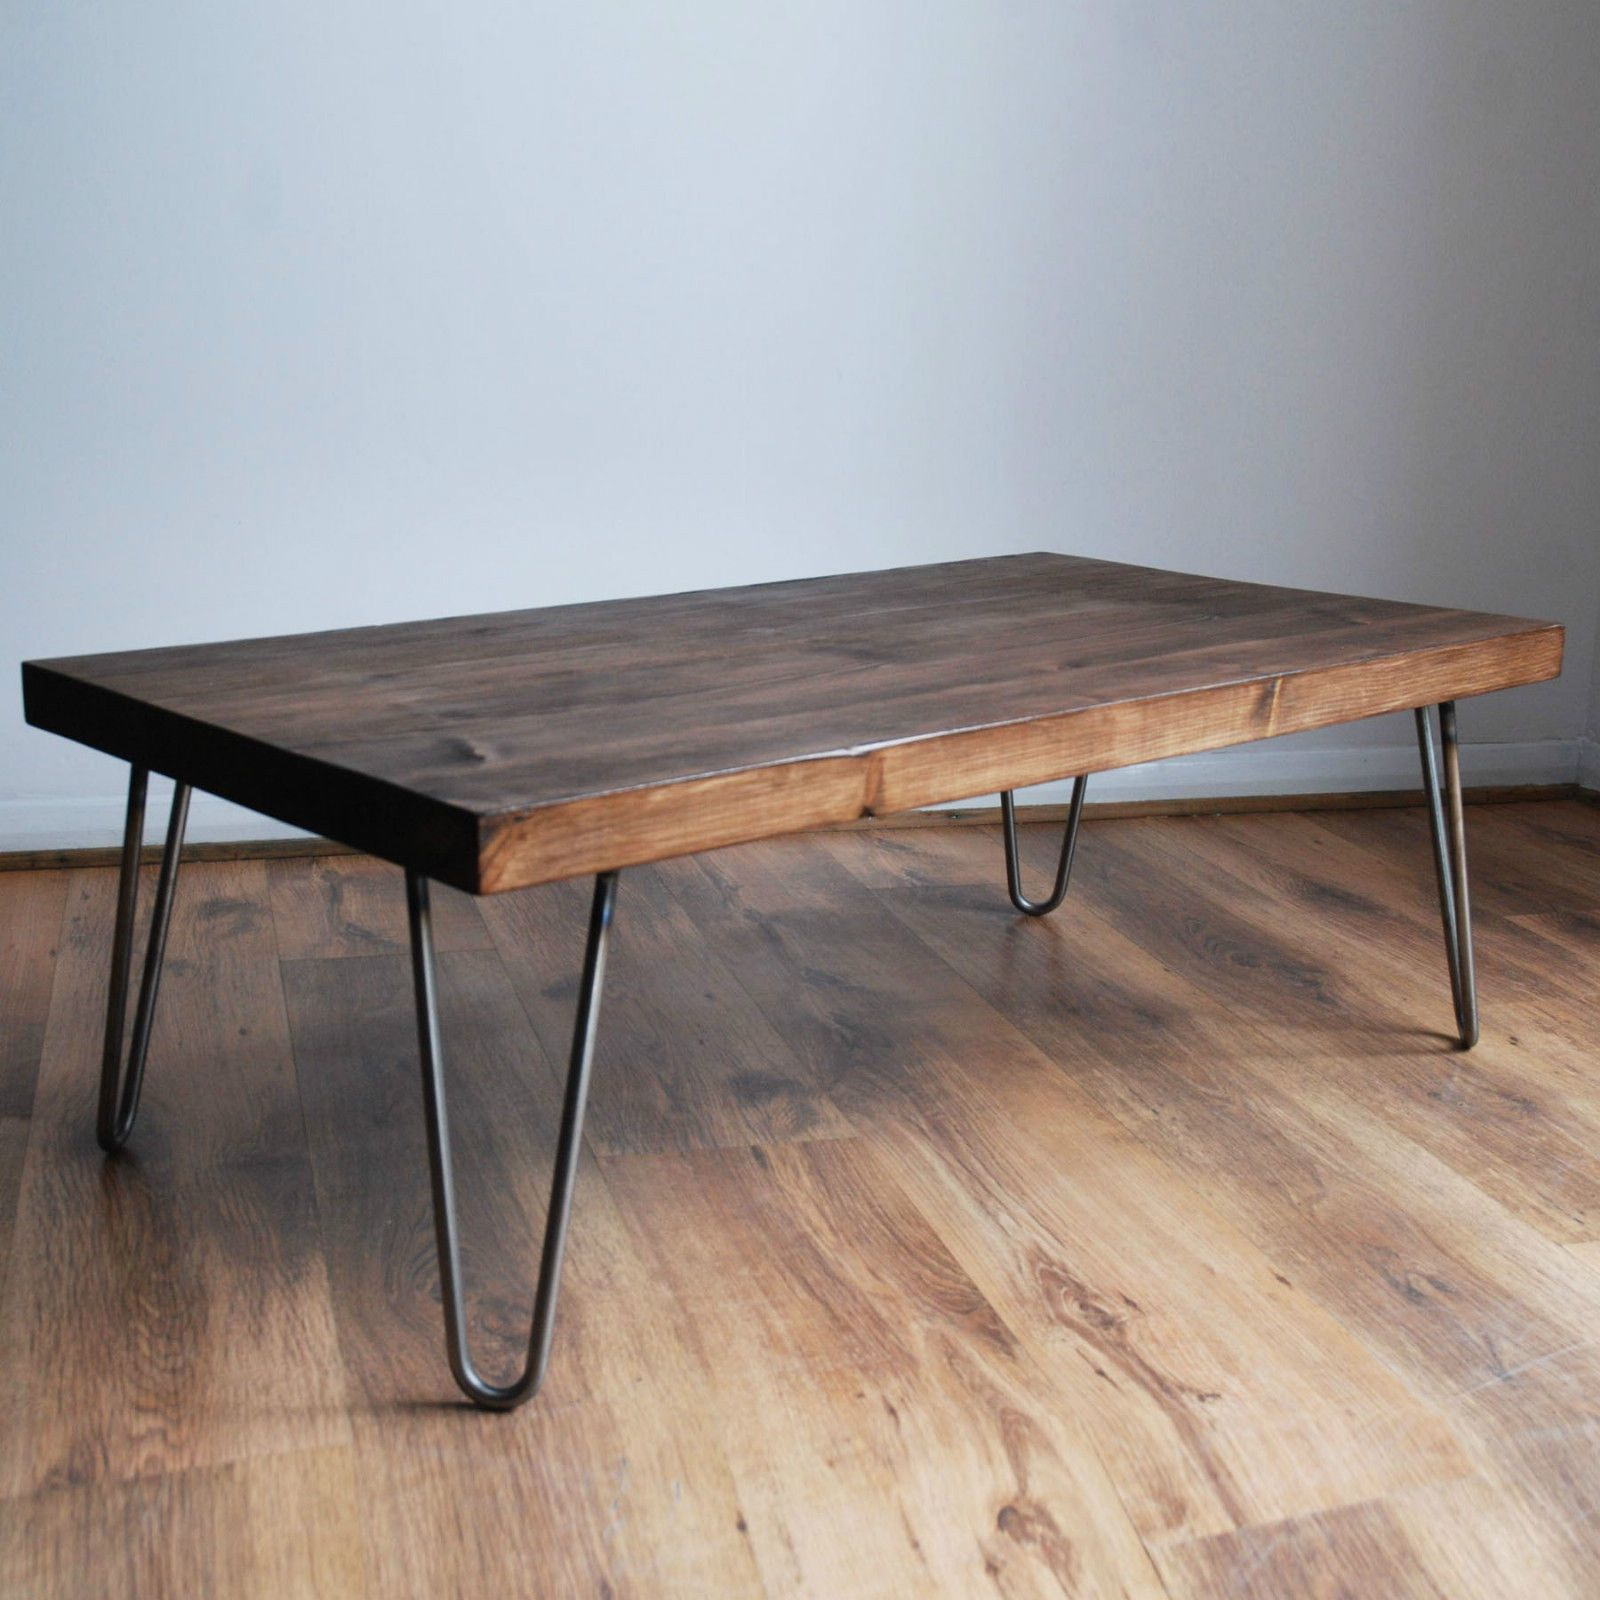 Details About Rustic Vintage Industrial Solid Wood Coffee